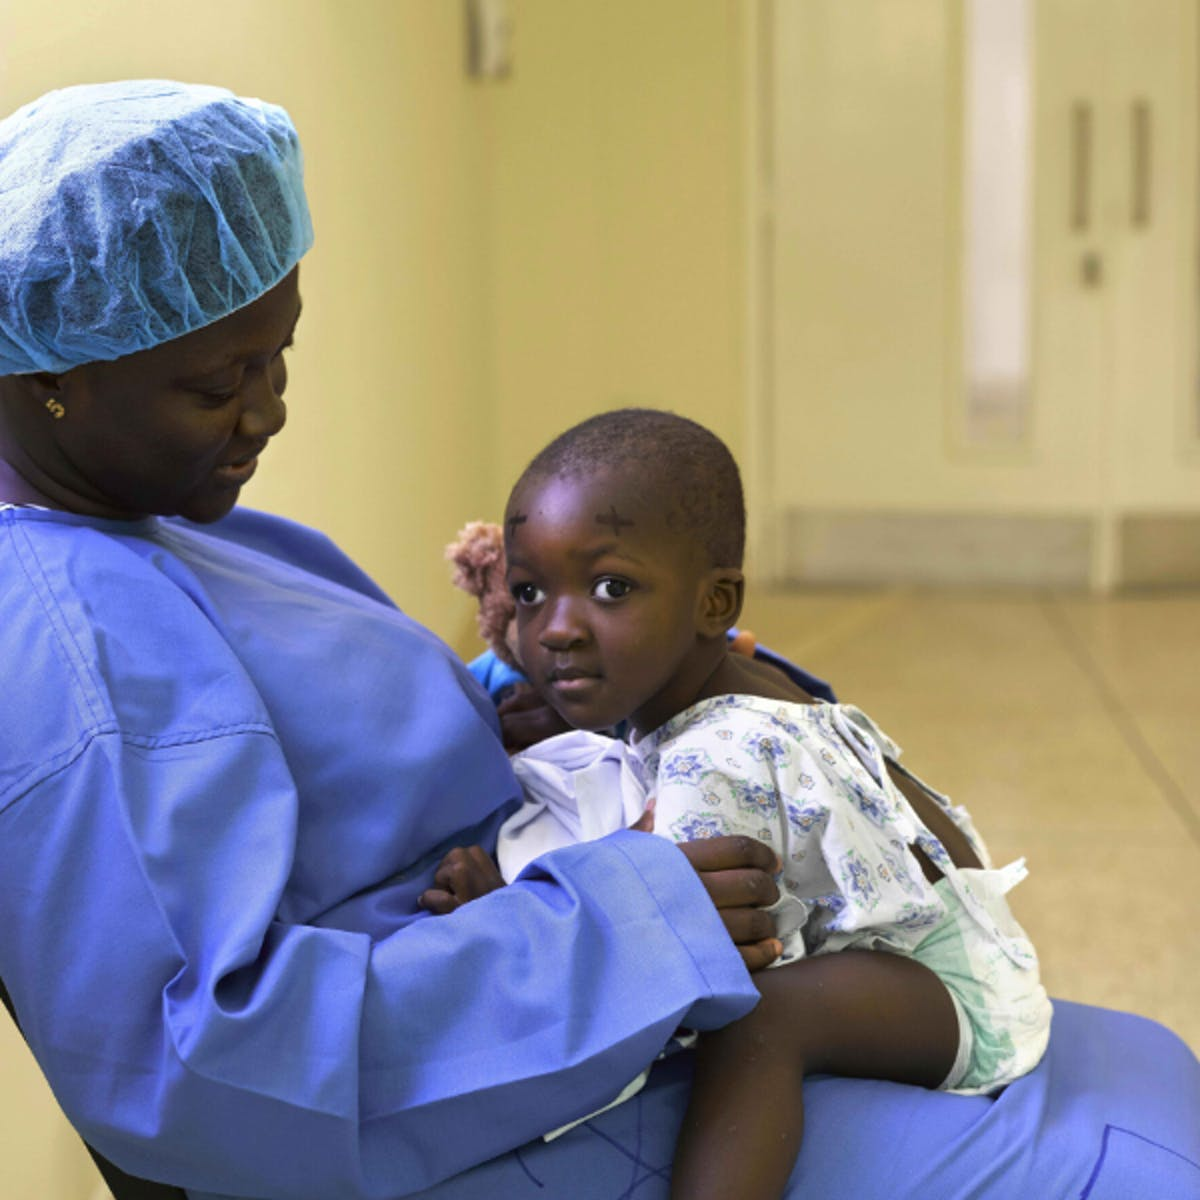 Brave Hakeema with her mom before her operation to correct her squint